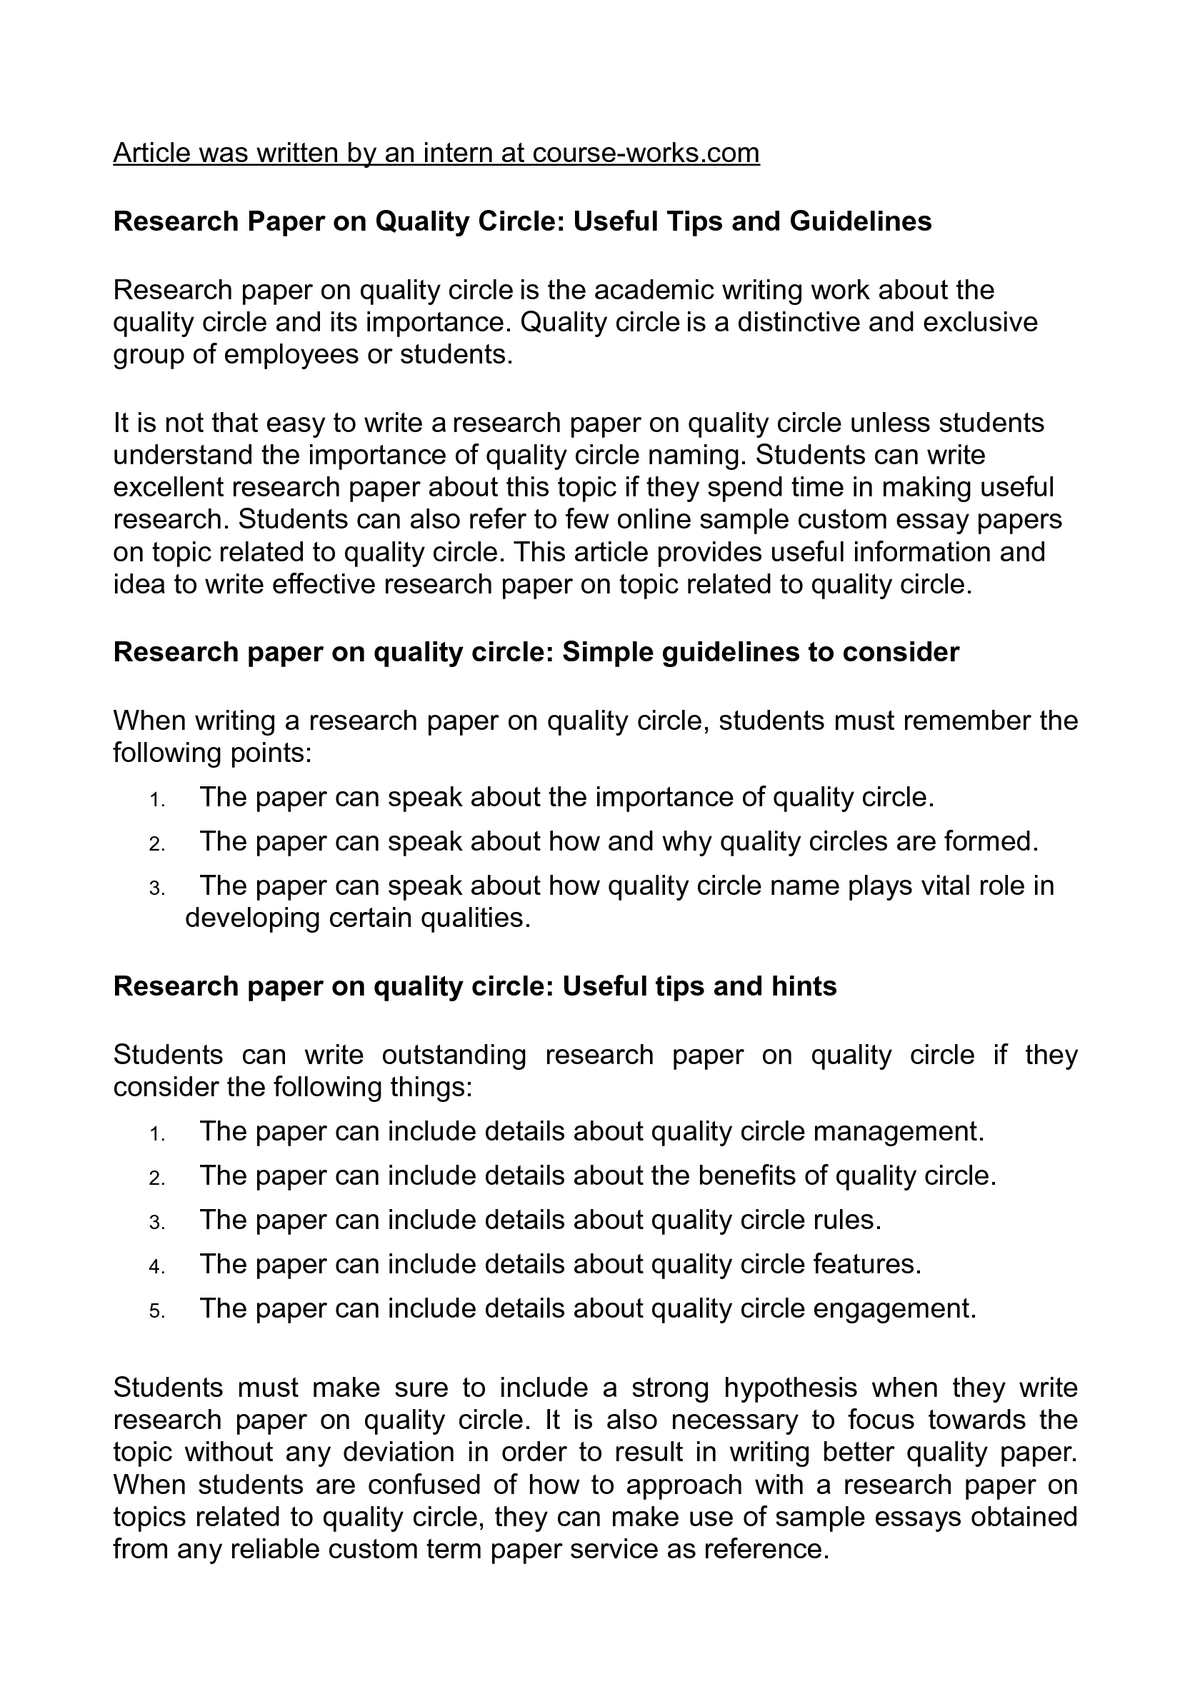 007 P1 Topics To Write Research Paper Beautiful On Good An Argumentative A Biology Economics Full